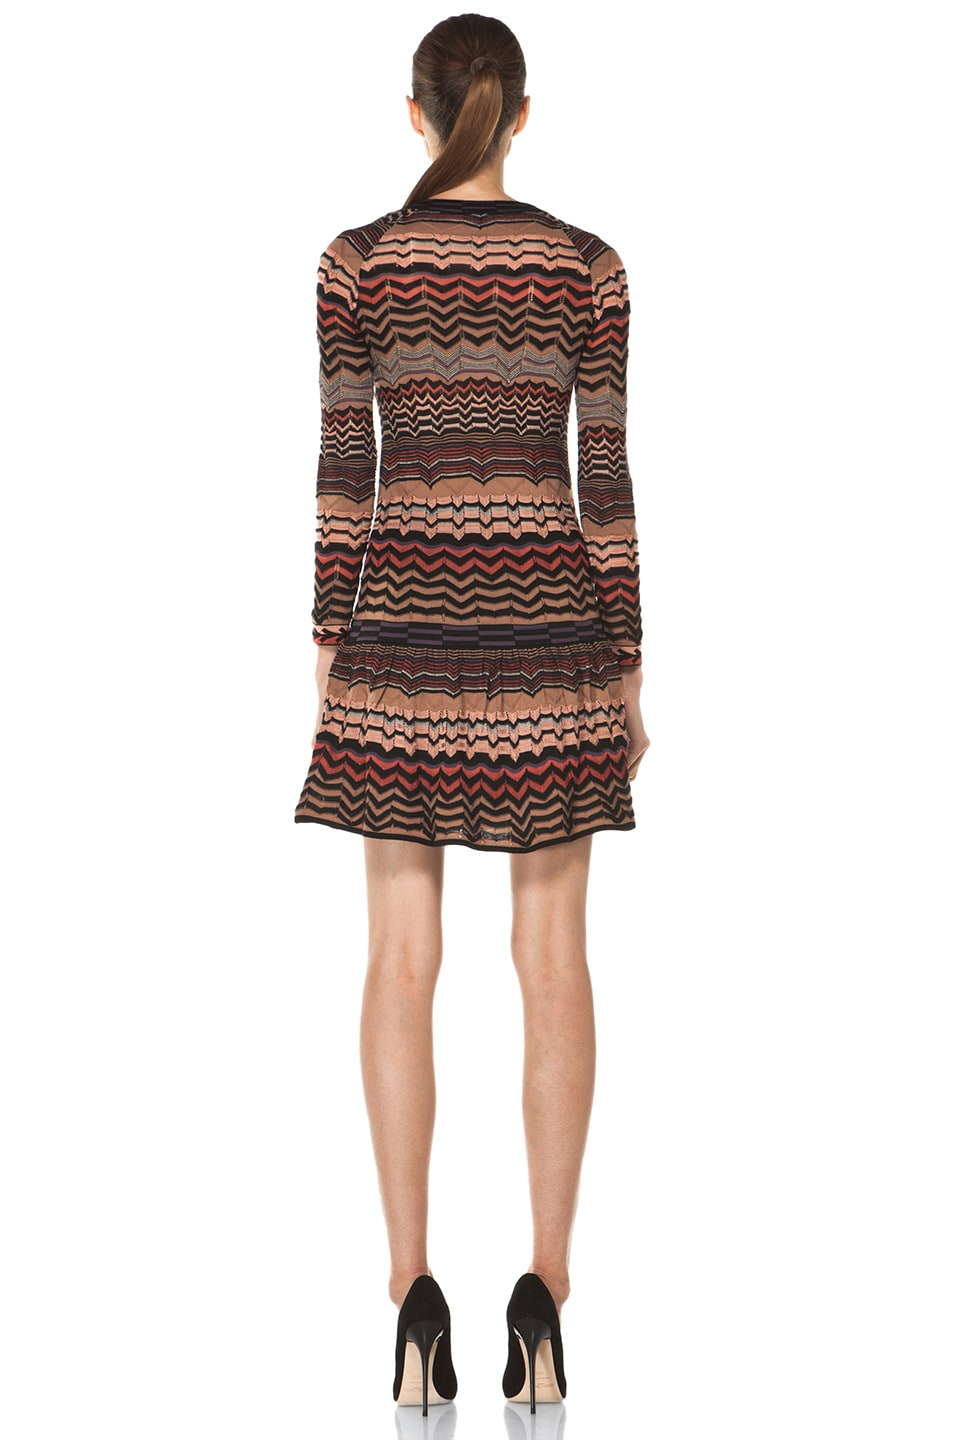 Image 4 of M Missoni Small Zig Zag Dress in Brown Multi